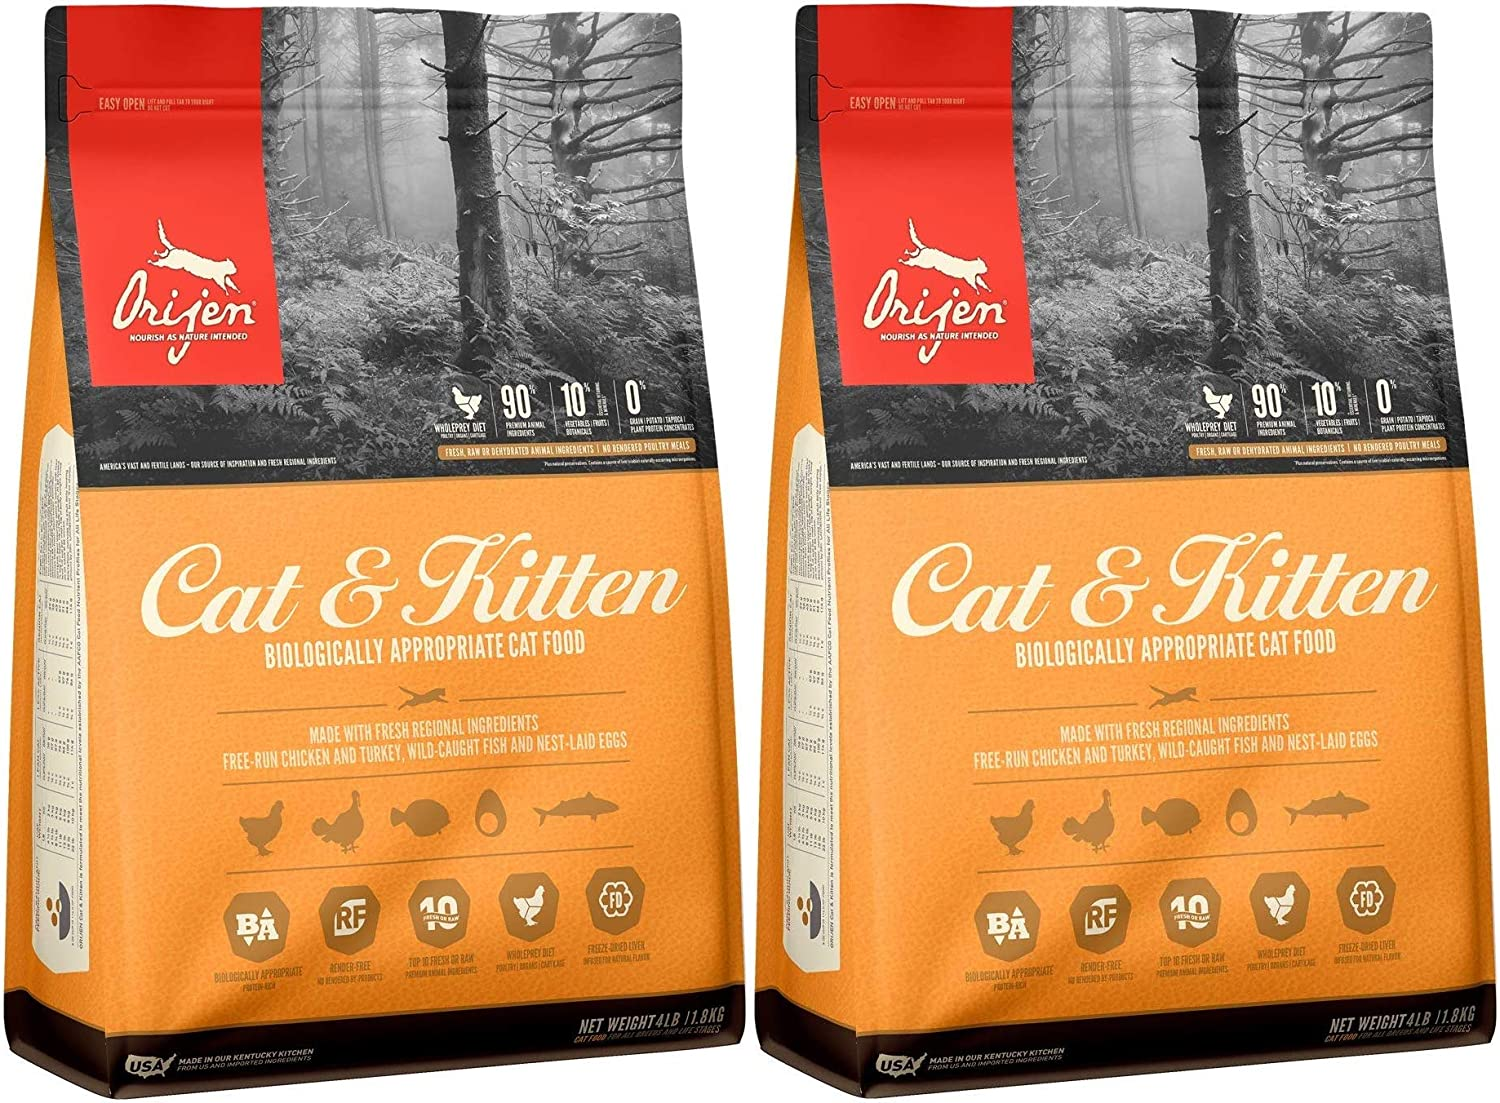 Orijen 2 Pack of Cat & Kitten Grain-Free Dry Food, 4 Pounds Each, Made in The USA